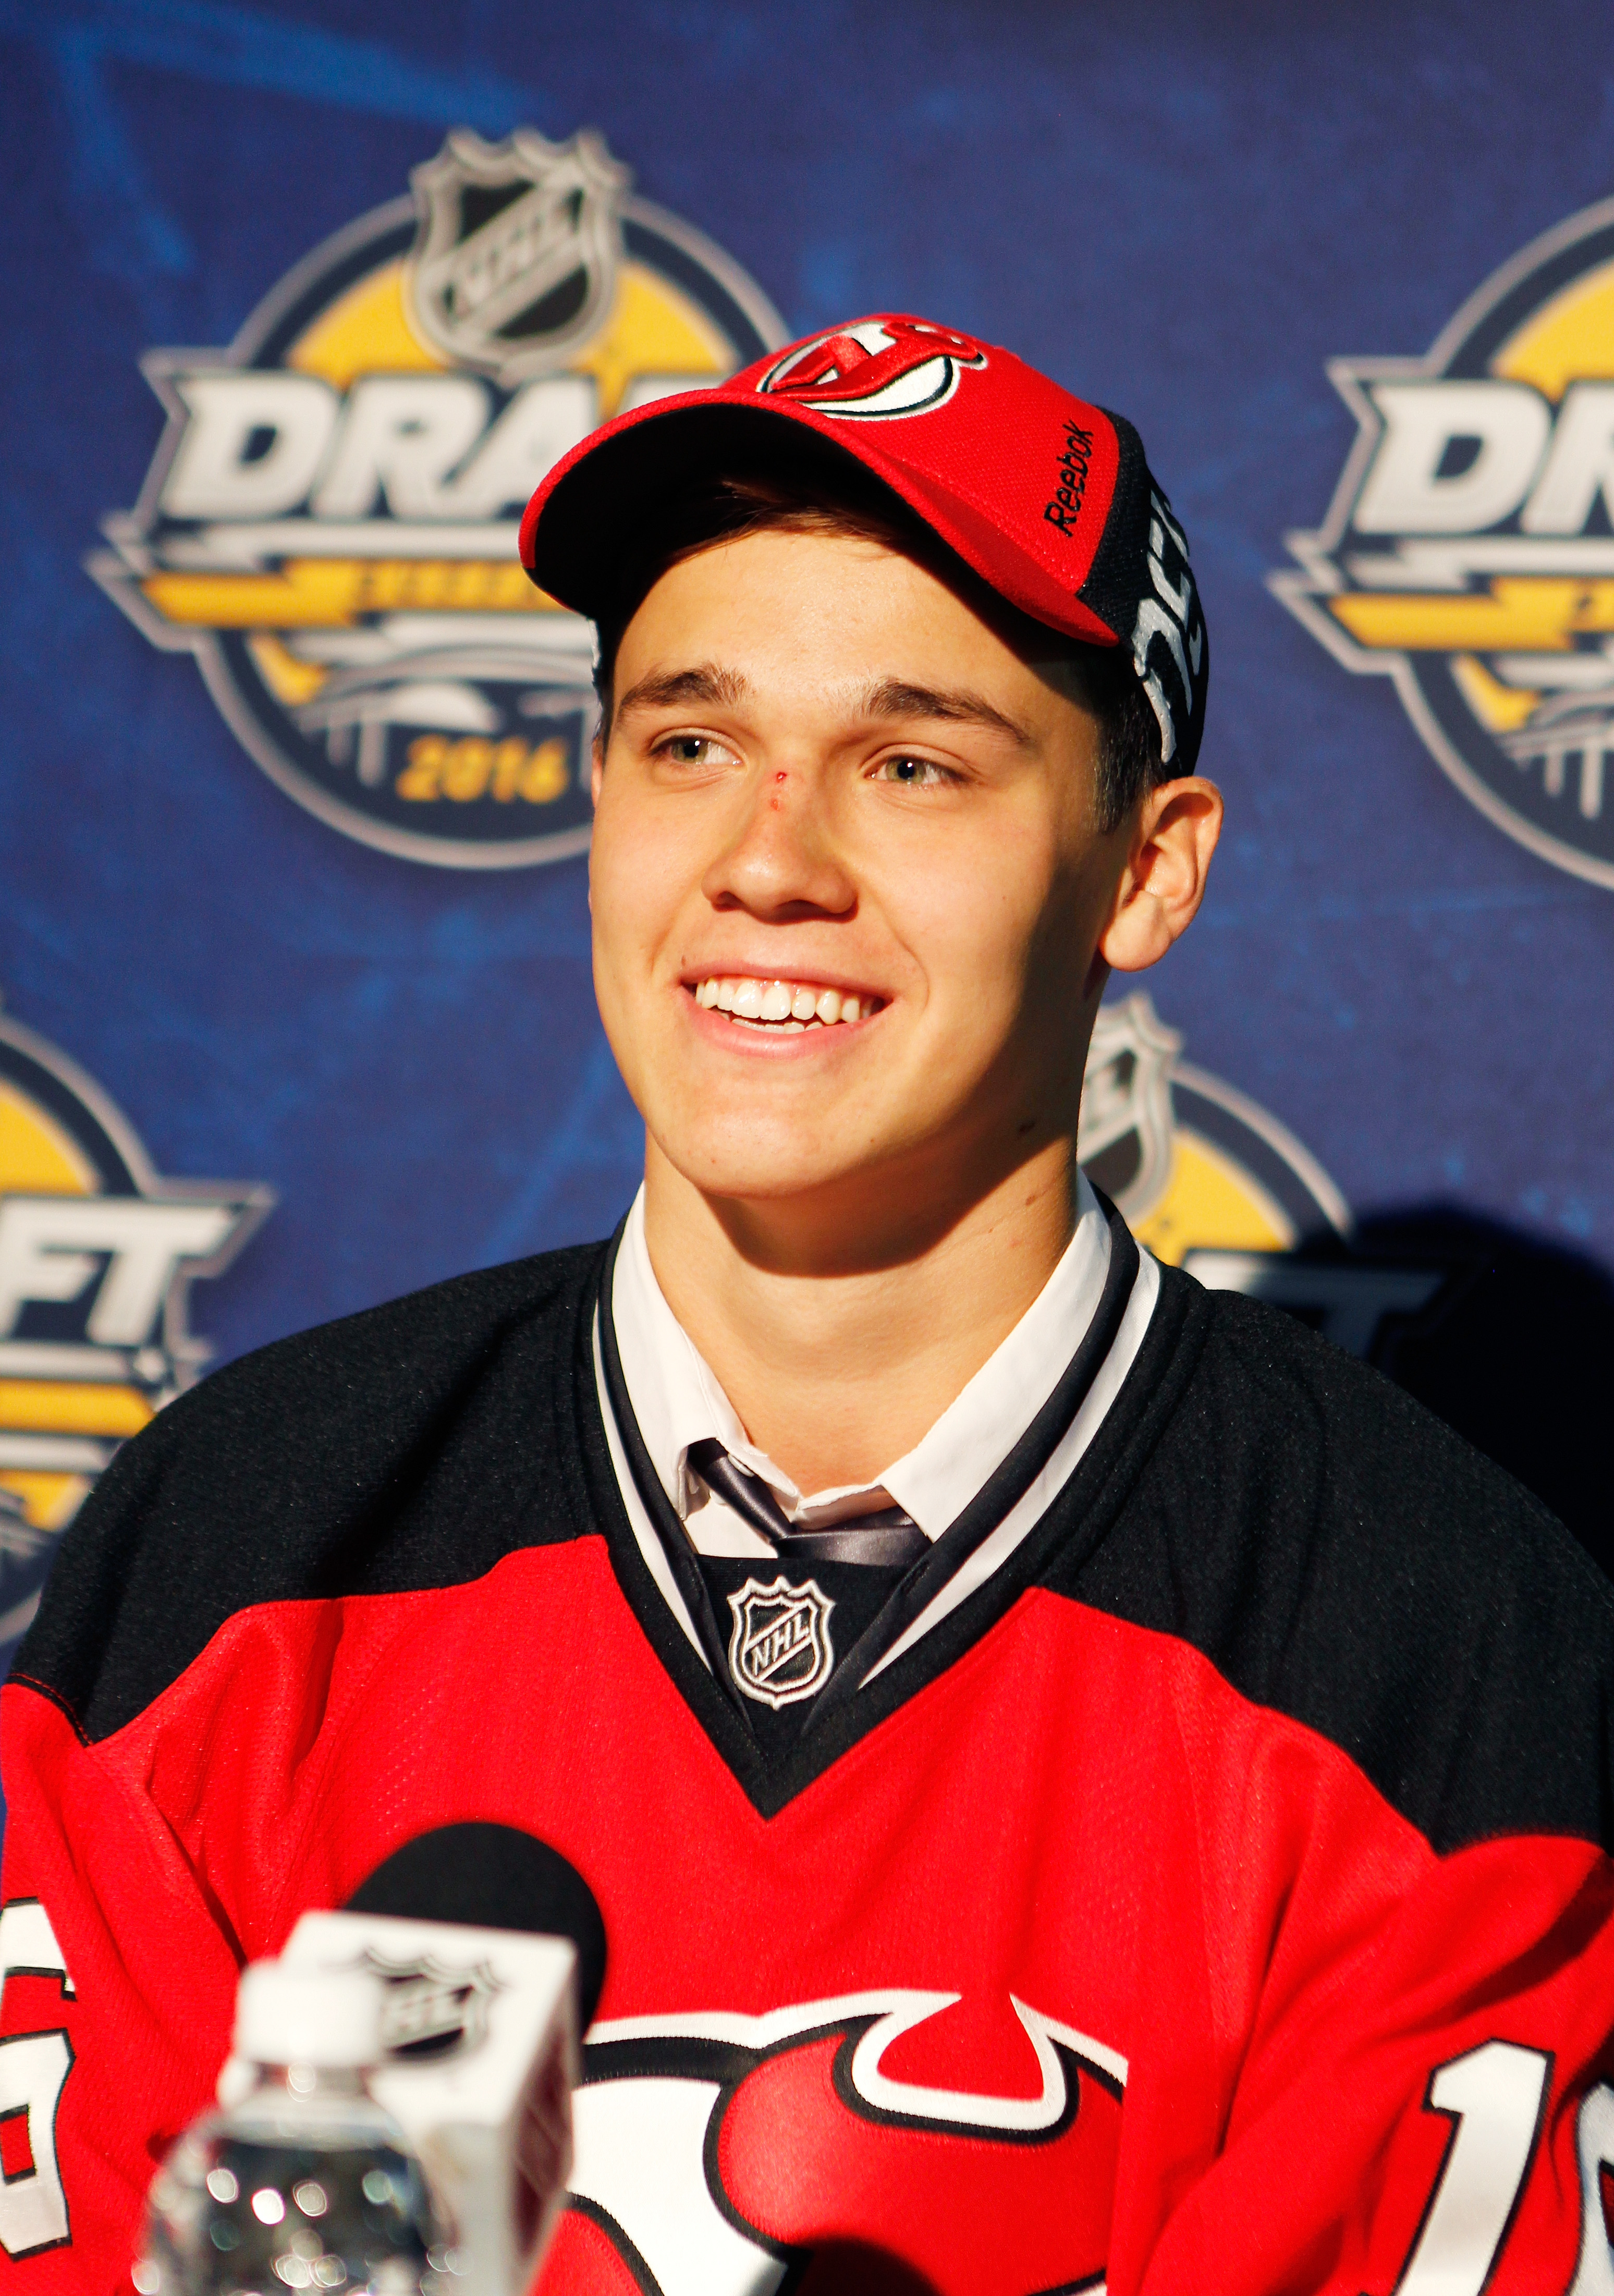 Maltsev took questions at the draft; he'll be doing more as a Devils prospect in the near future.